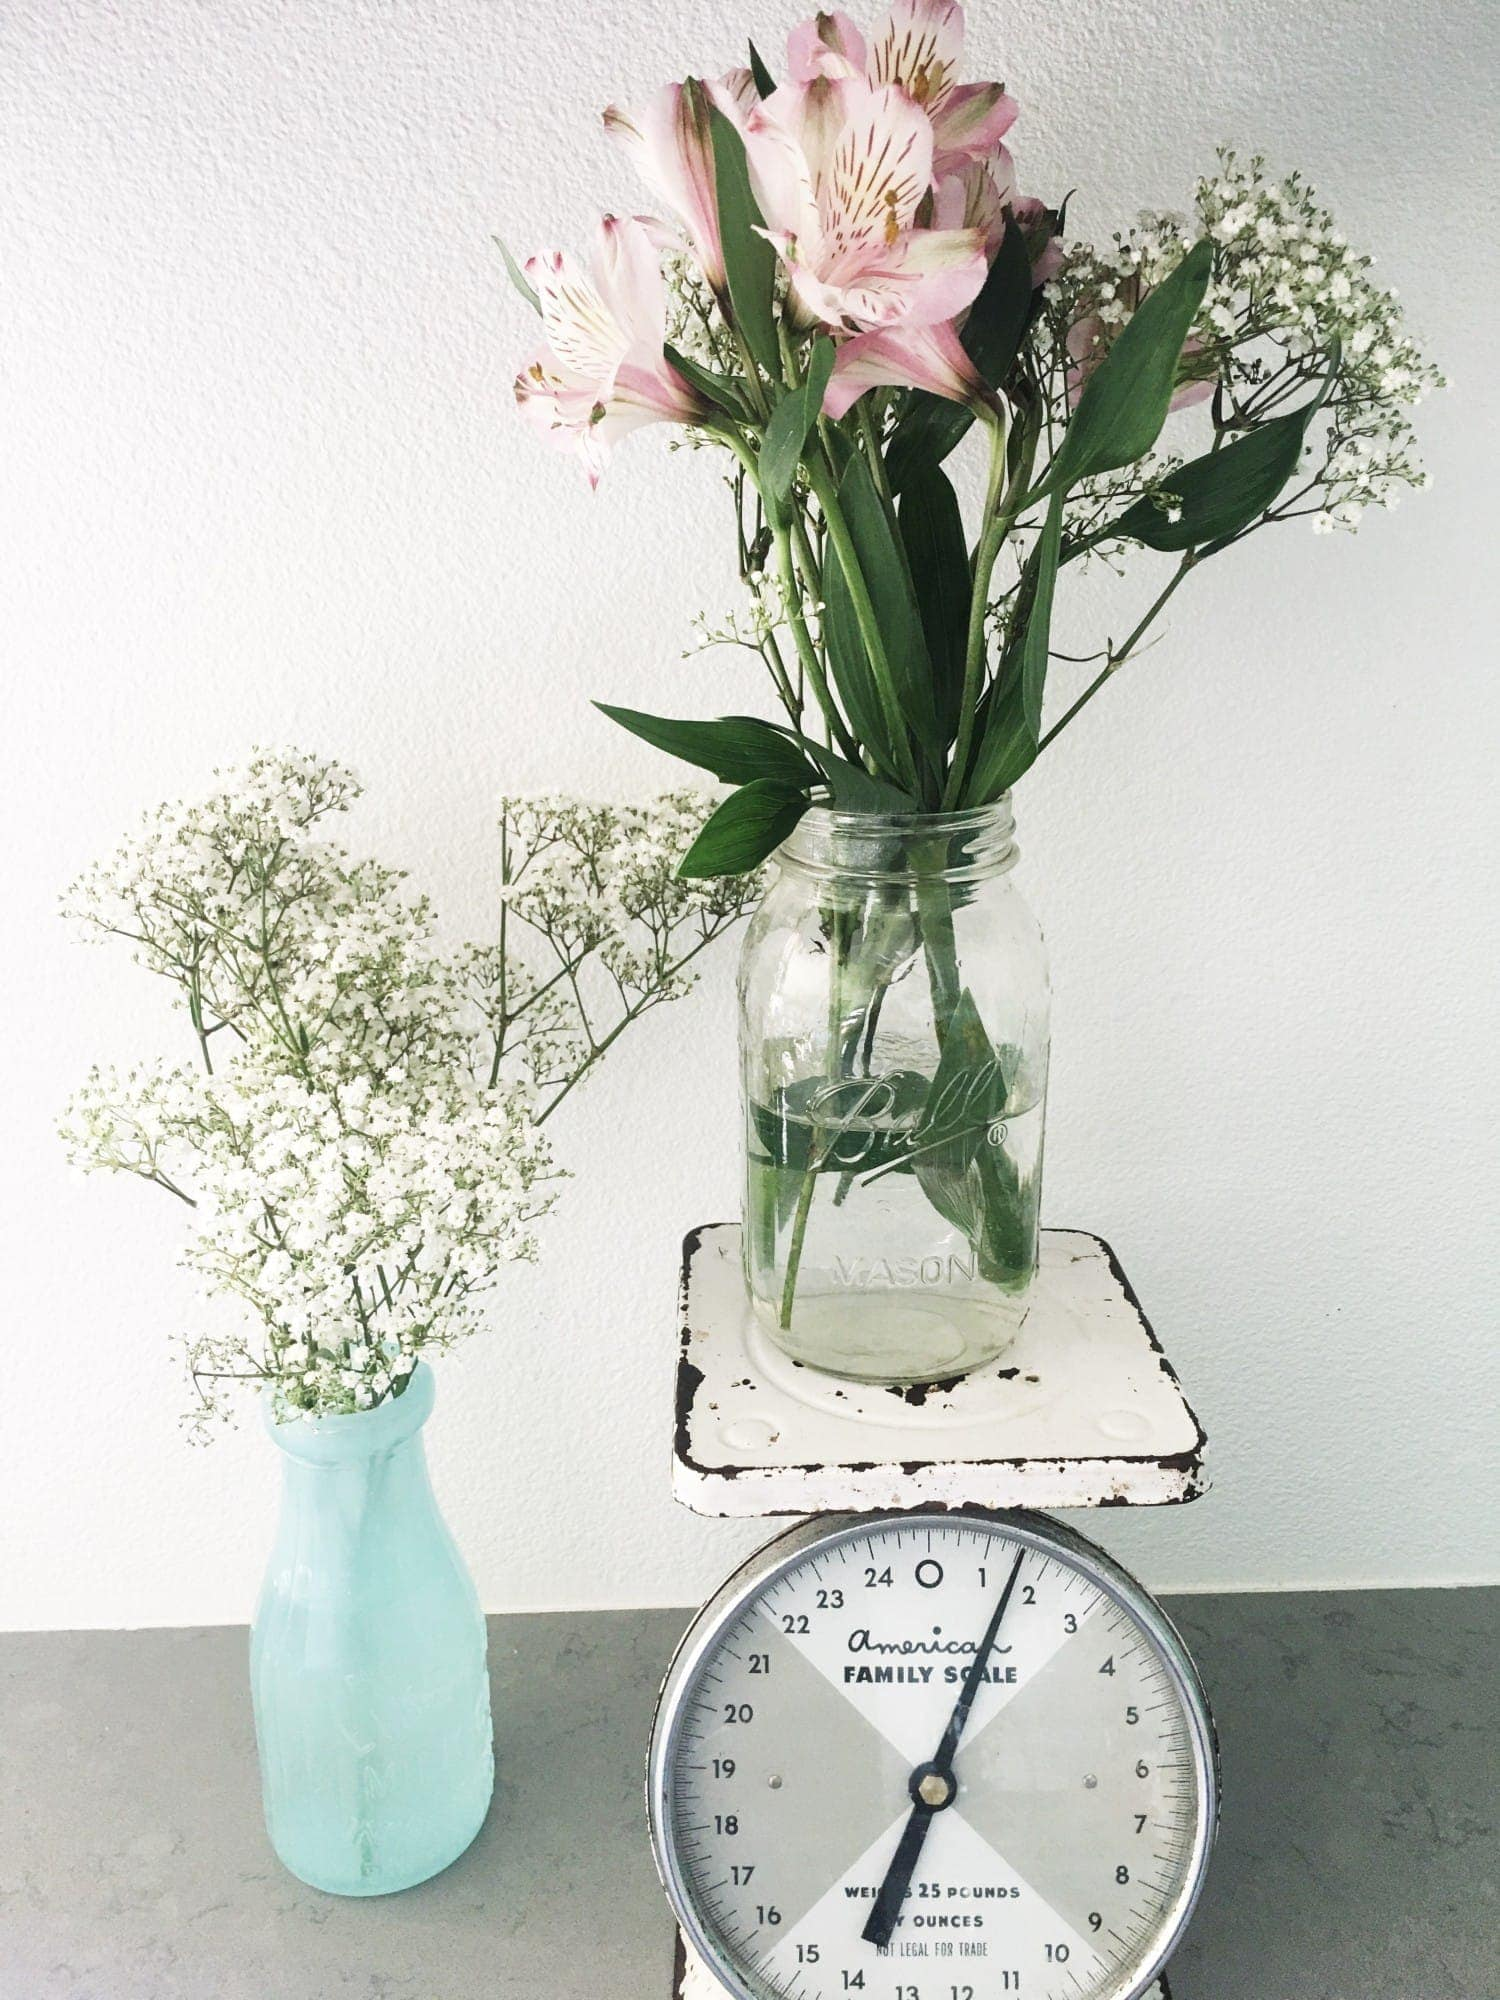 antique scale with flowers